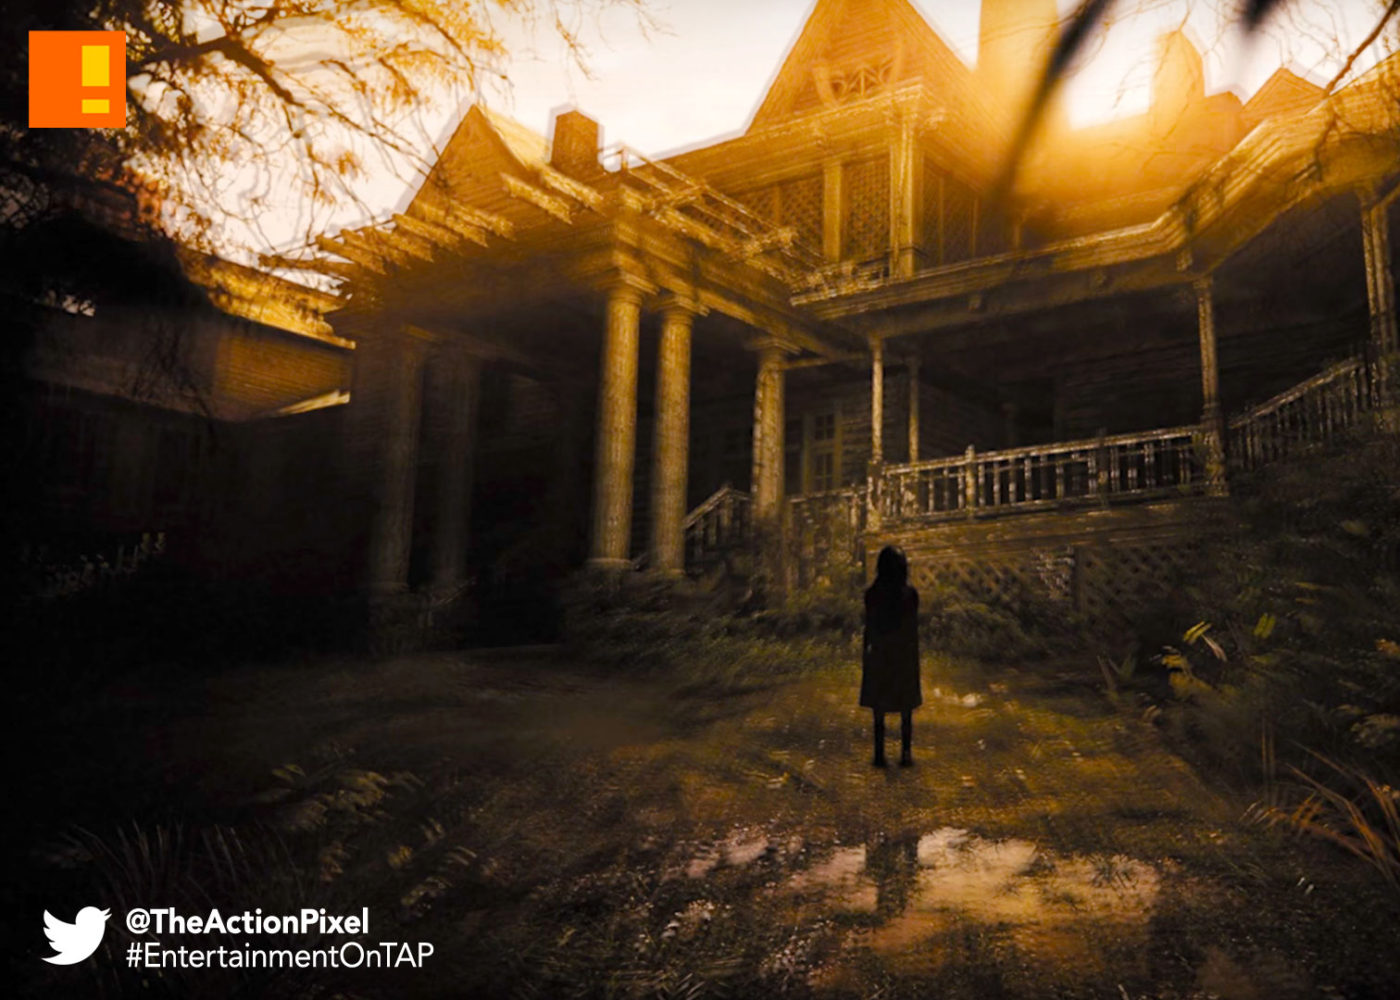 resident evil 7, welcome home, the action pixel, entertainment on tap, capcom, resident evil vii, resident evil vii: biohazard, biohazard,welcome home , trailer,